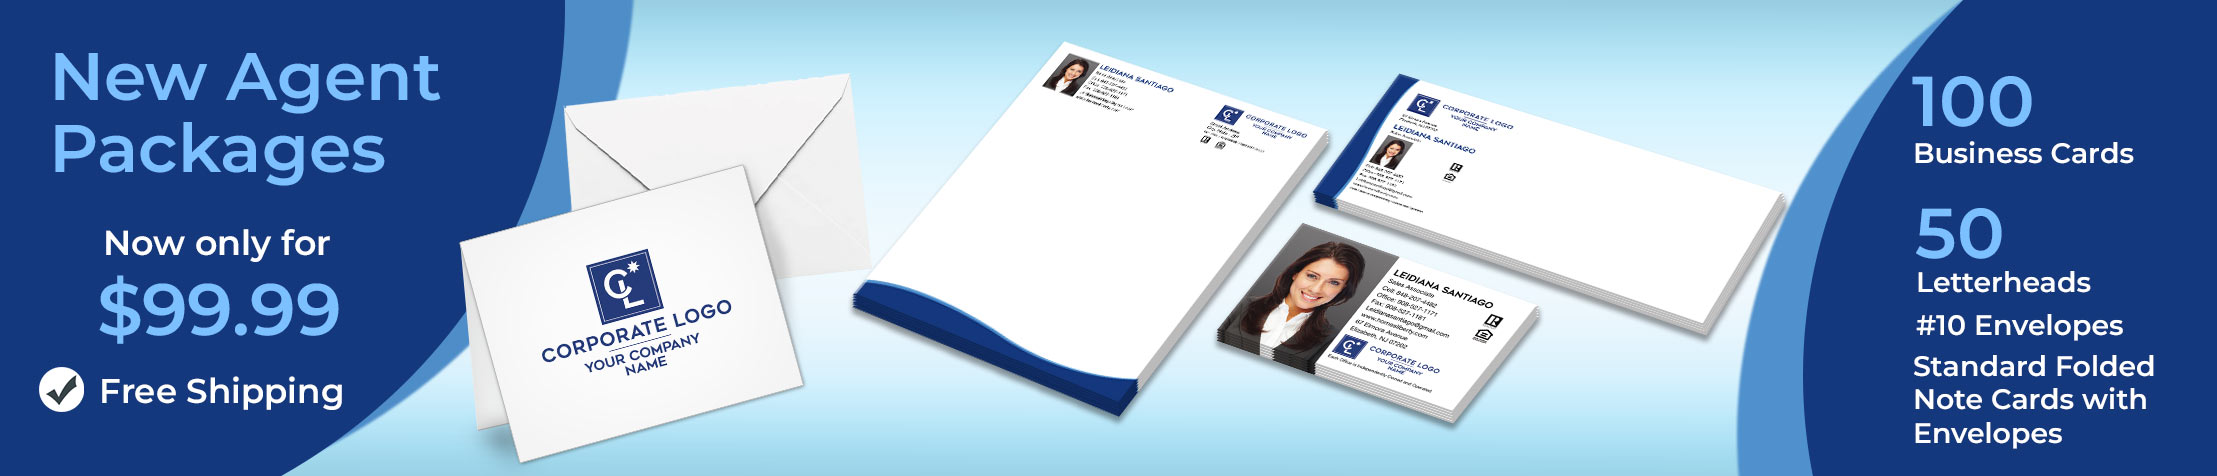 Coldwell Banker Real Estate New Agent Package - Coldwell Banker personalized business cards, letterhead, envelopes and note cards with free shipping | BestPrintBuy.com